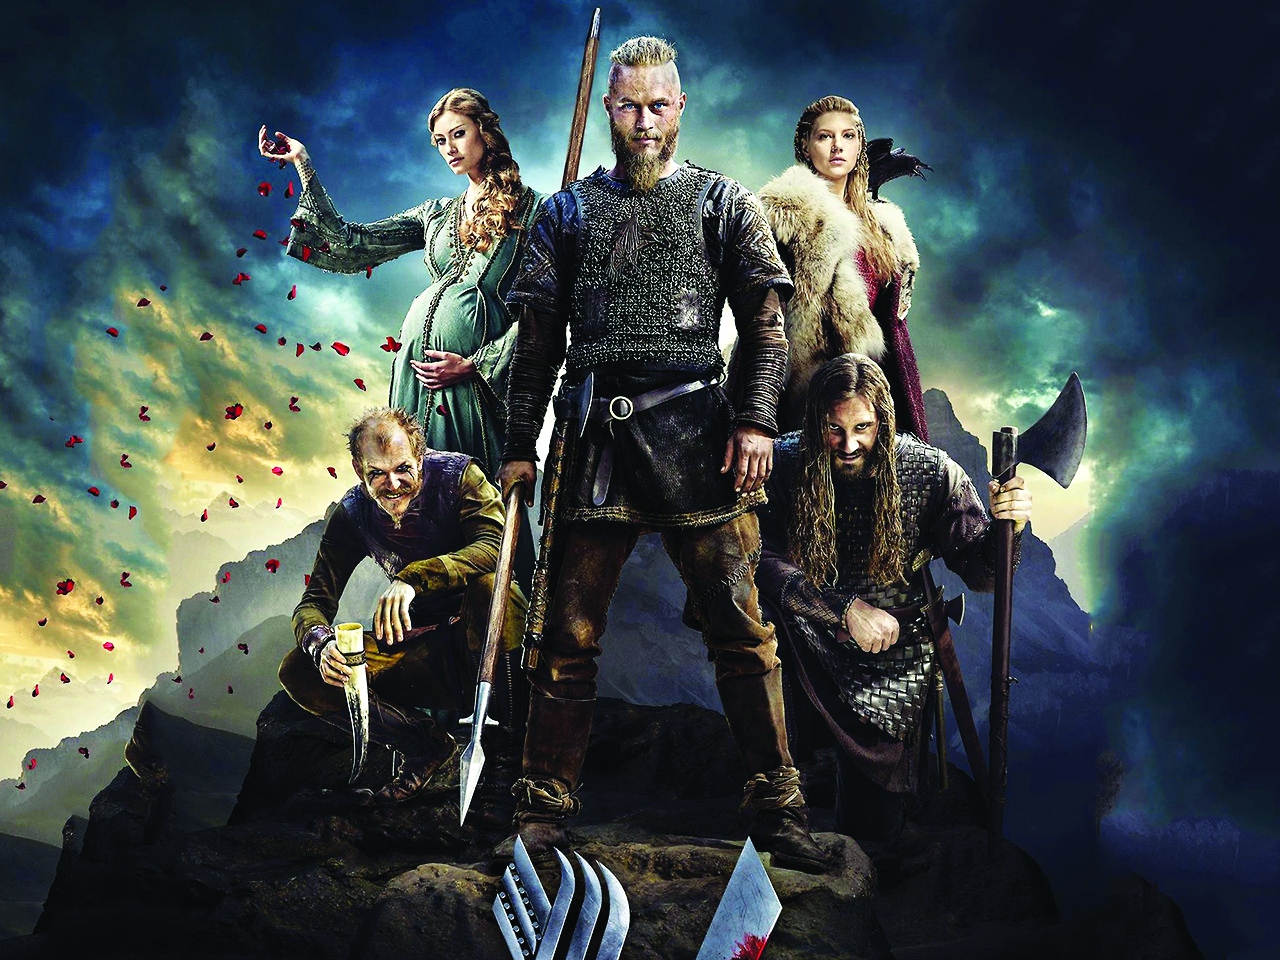 Oman Weekend Download: Vikings is a TV show that explores their amazing history